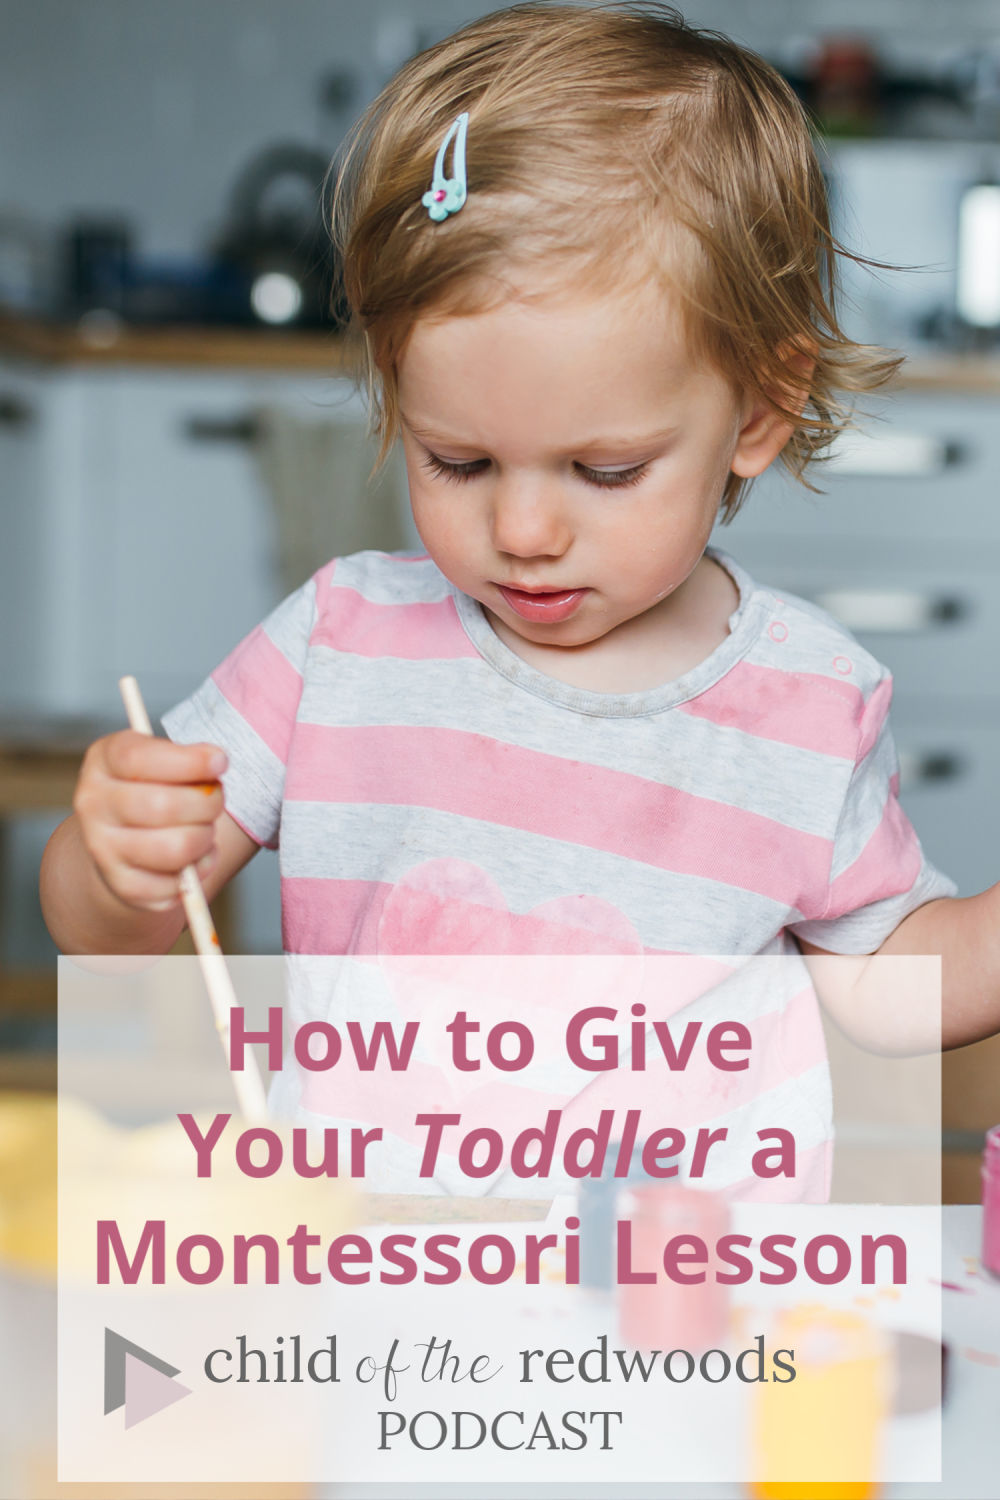 Stress-Busting Tips for Tired, Cranky Parents